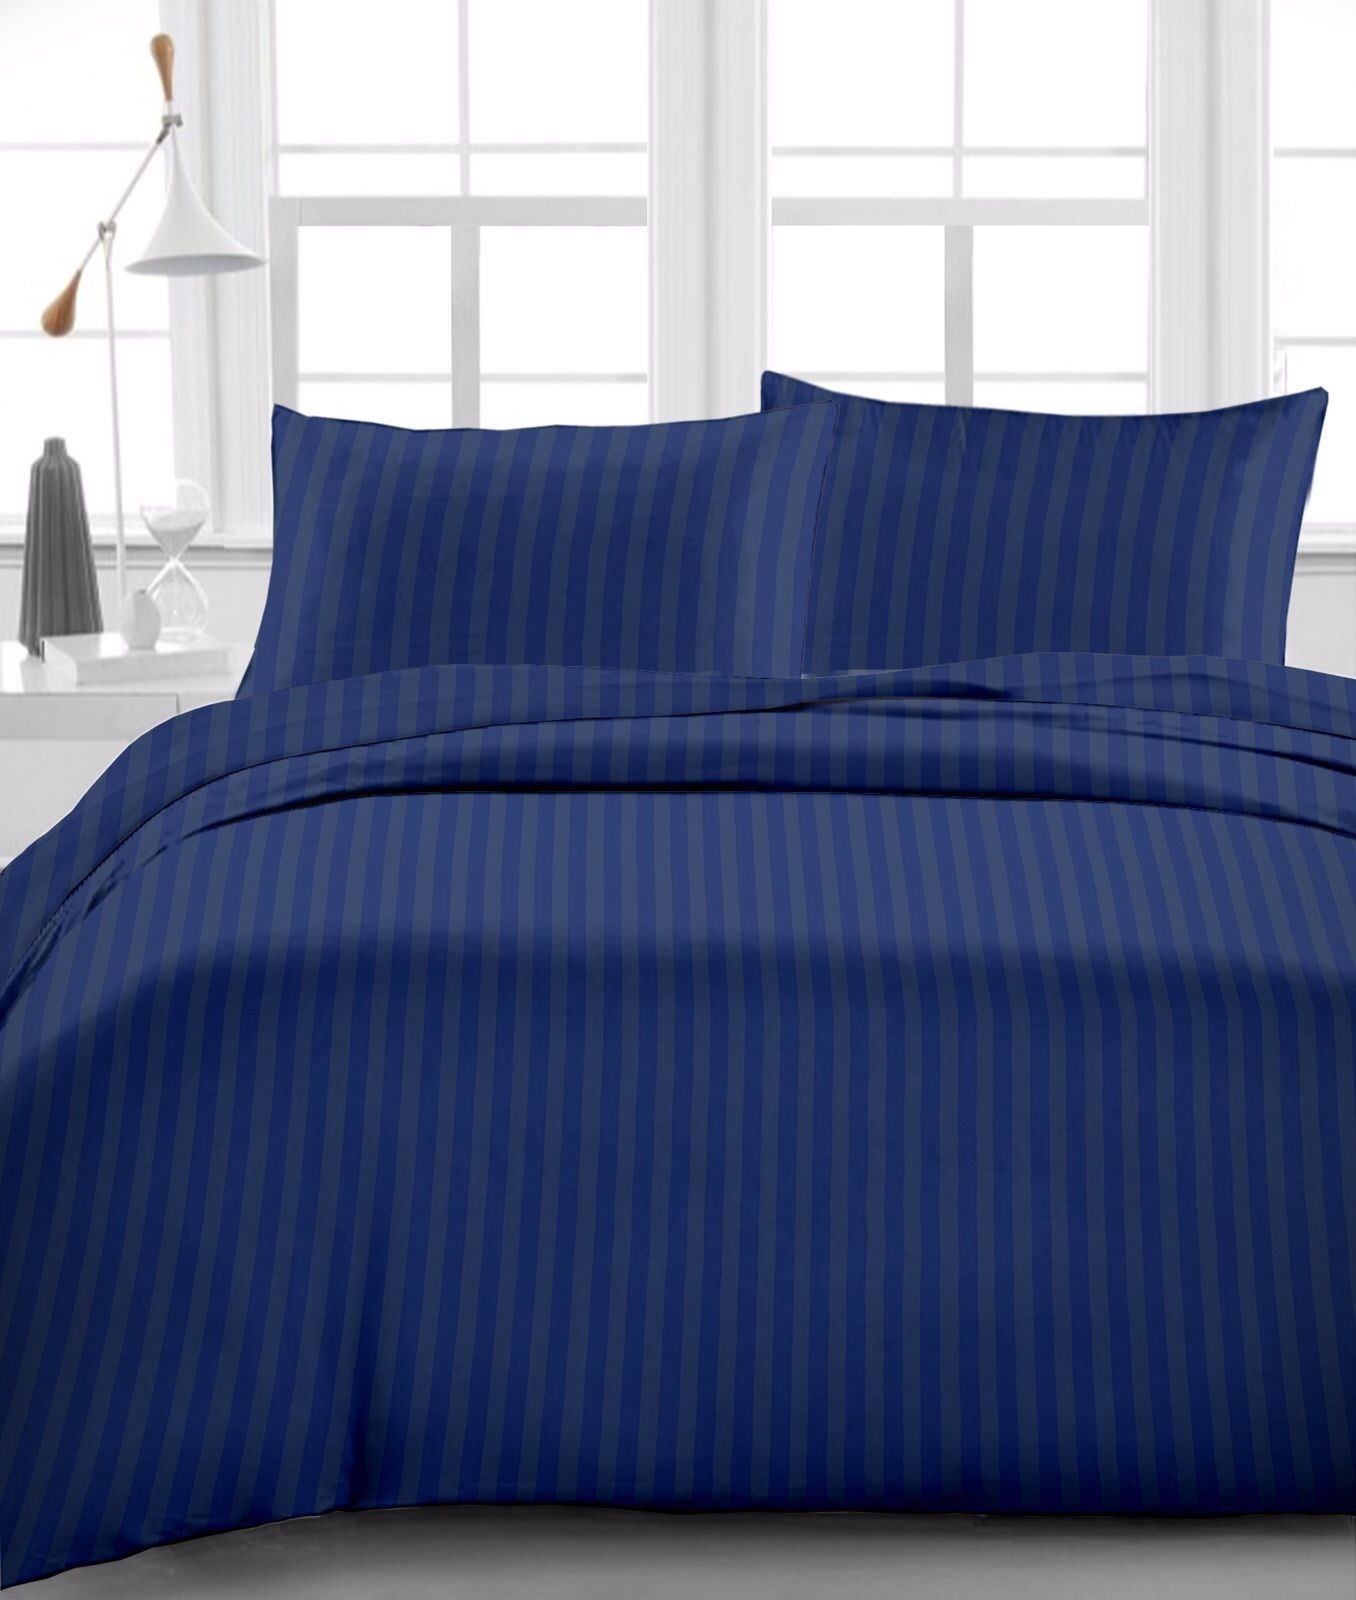 the features interior dry made usa do to pin duvet bleach comforter included tumble in or iron down low ties zipper cover not attach